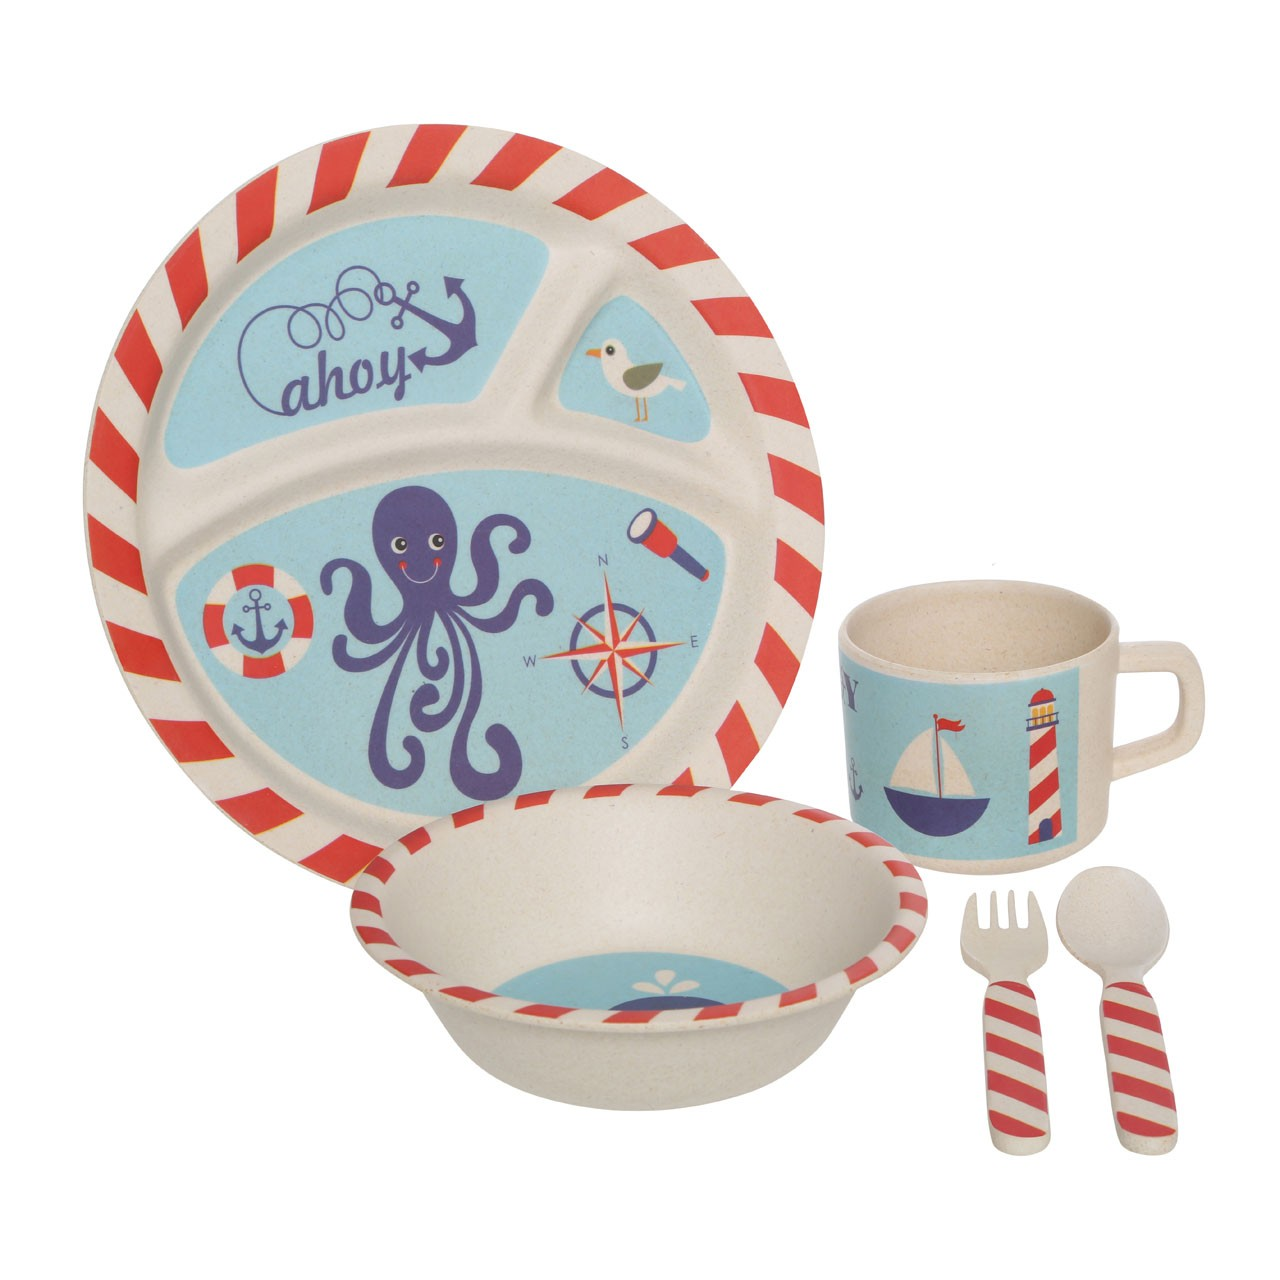 Prime Furnishing Eden 5pc Kids' Pirate Dinner Set